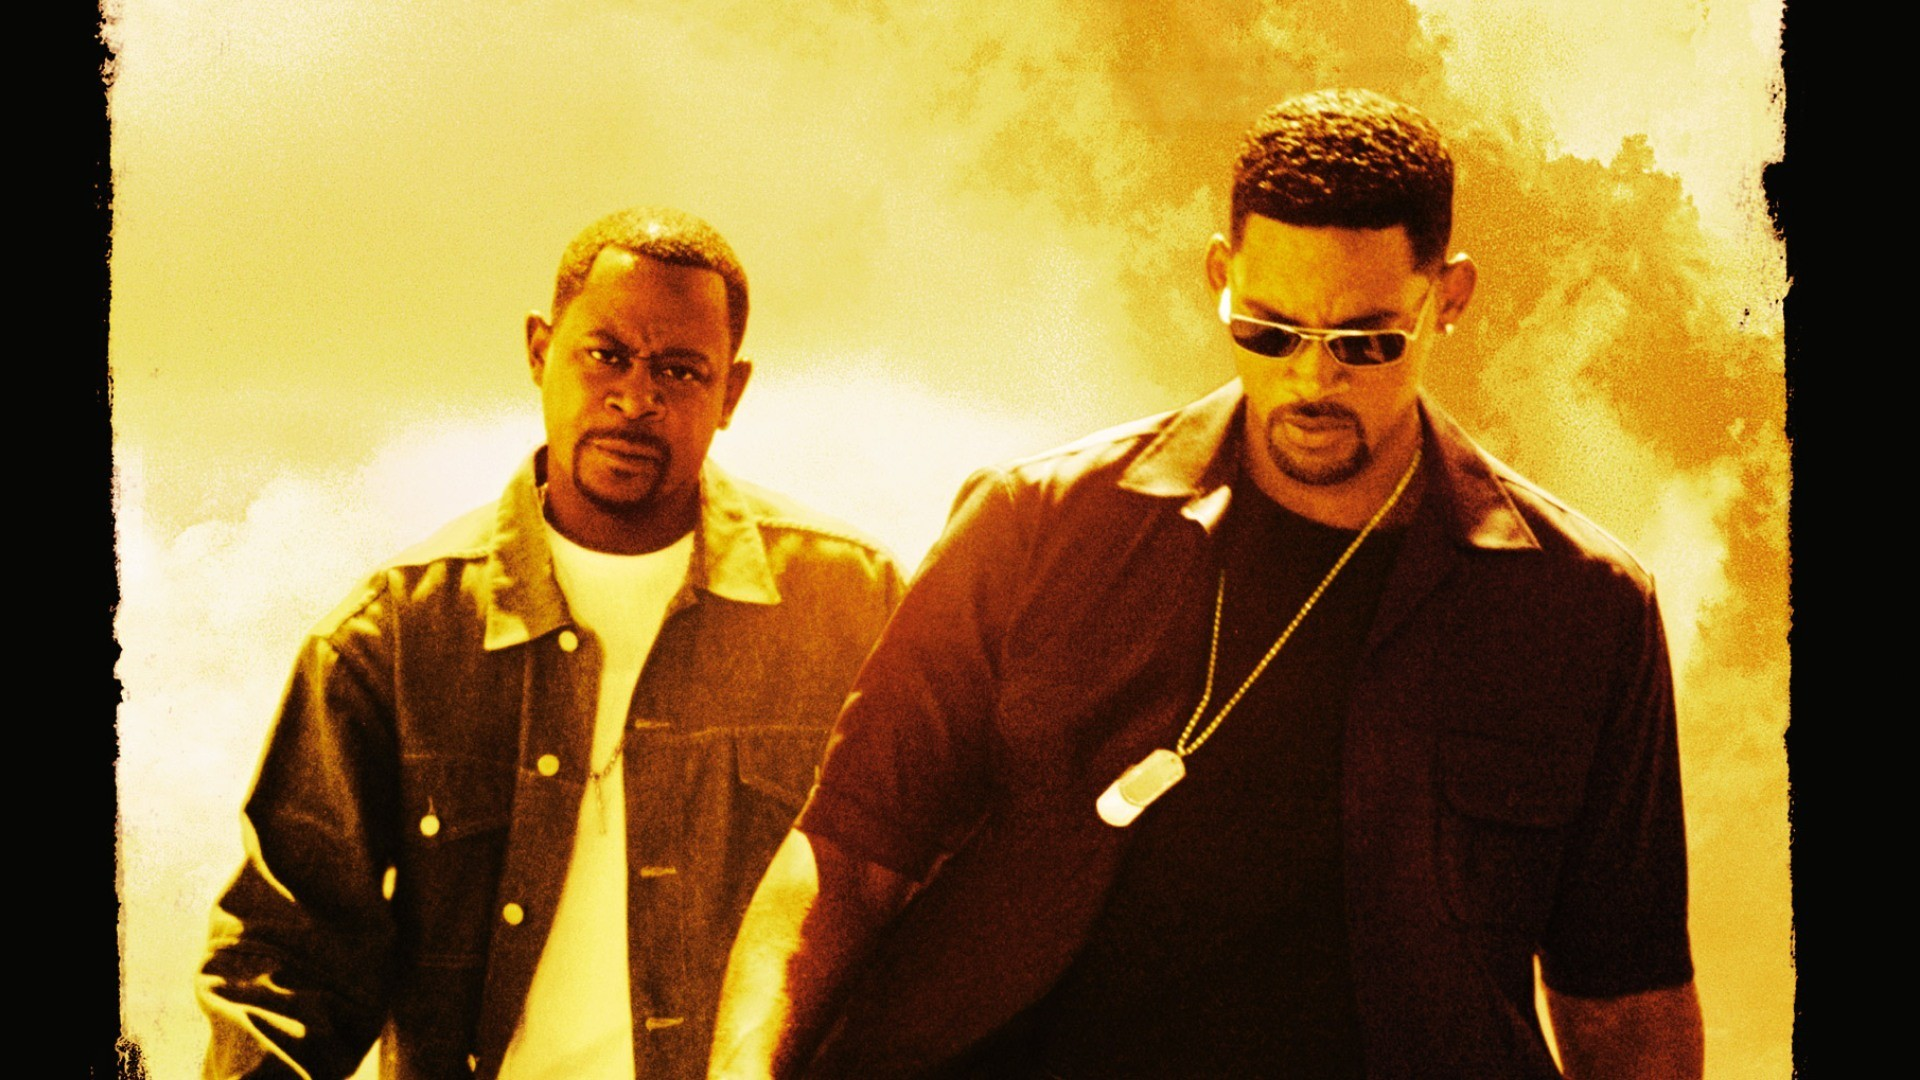 BAD BOYS II | Austin | Alamo Drafthouse Cinema